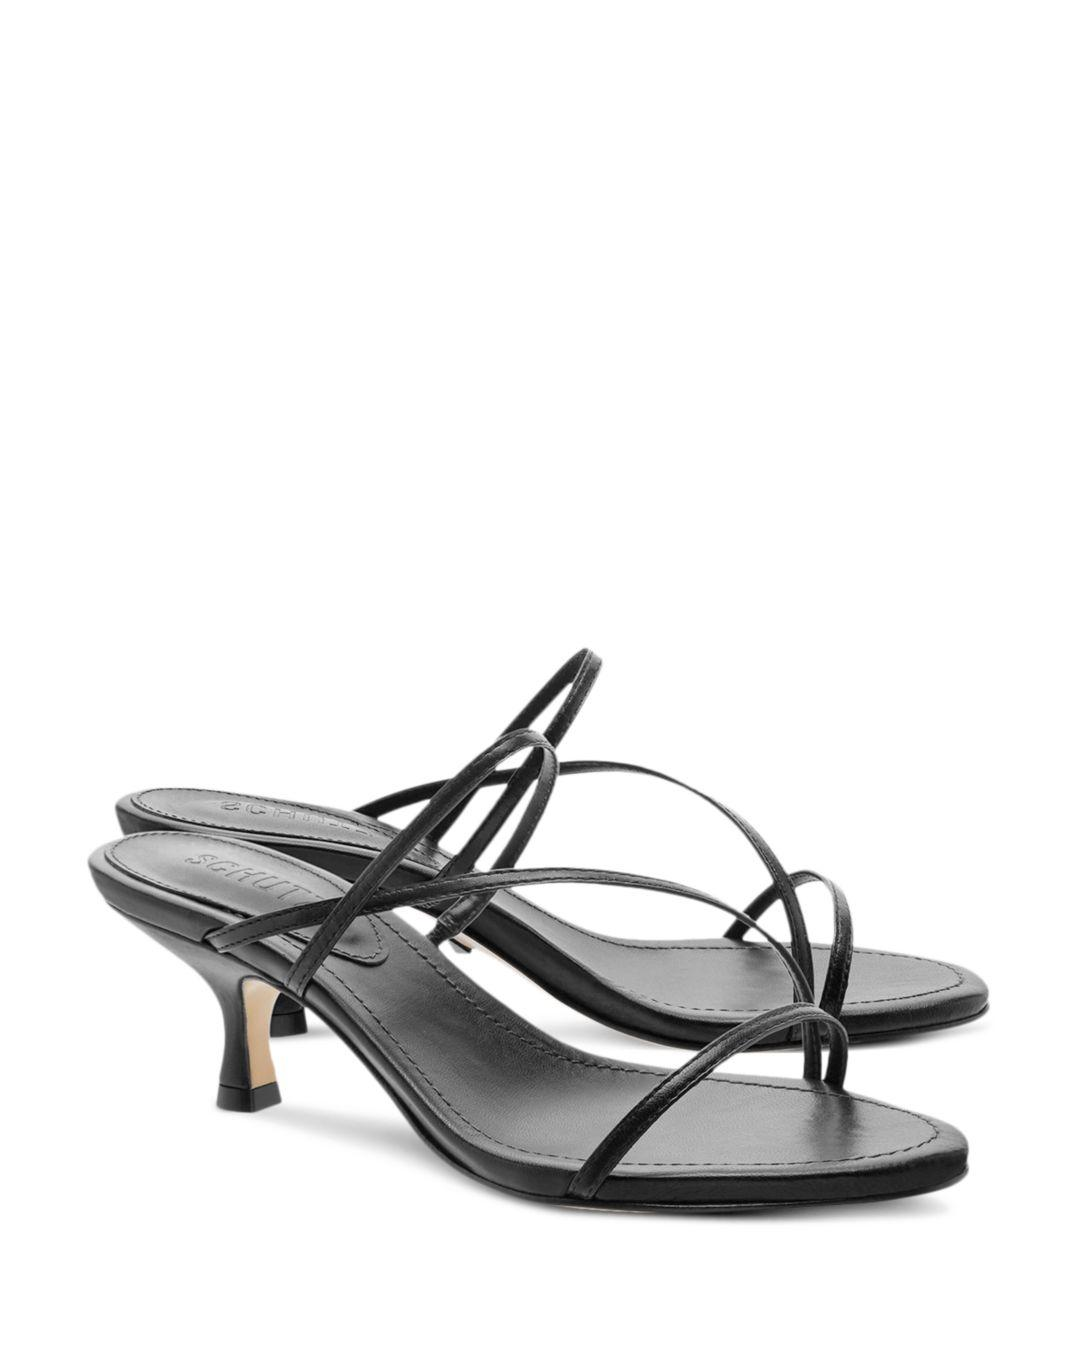 5a966329051 Schutz - Black Women s Evenise Kitten Heel Sandals - Lyst. View fullscreen